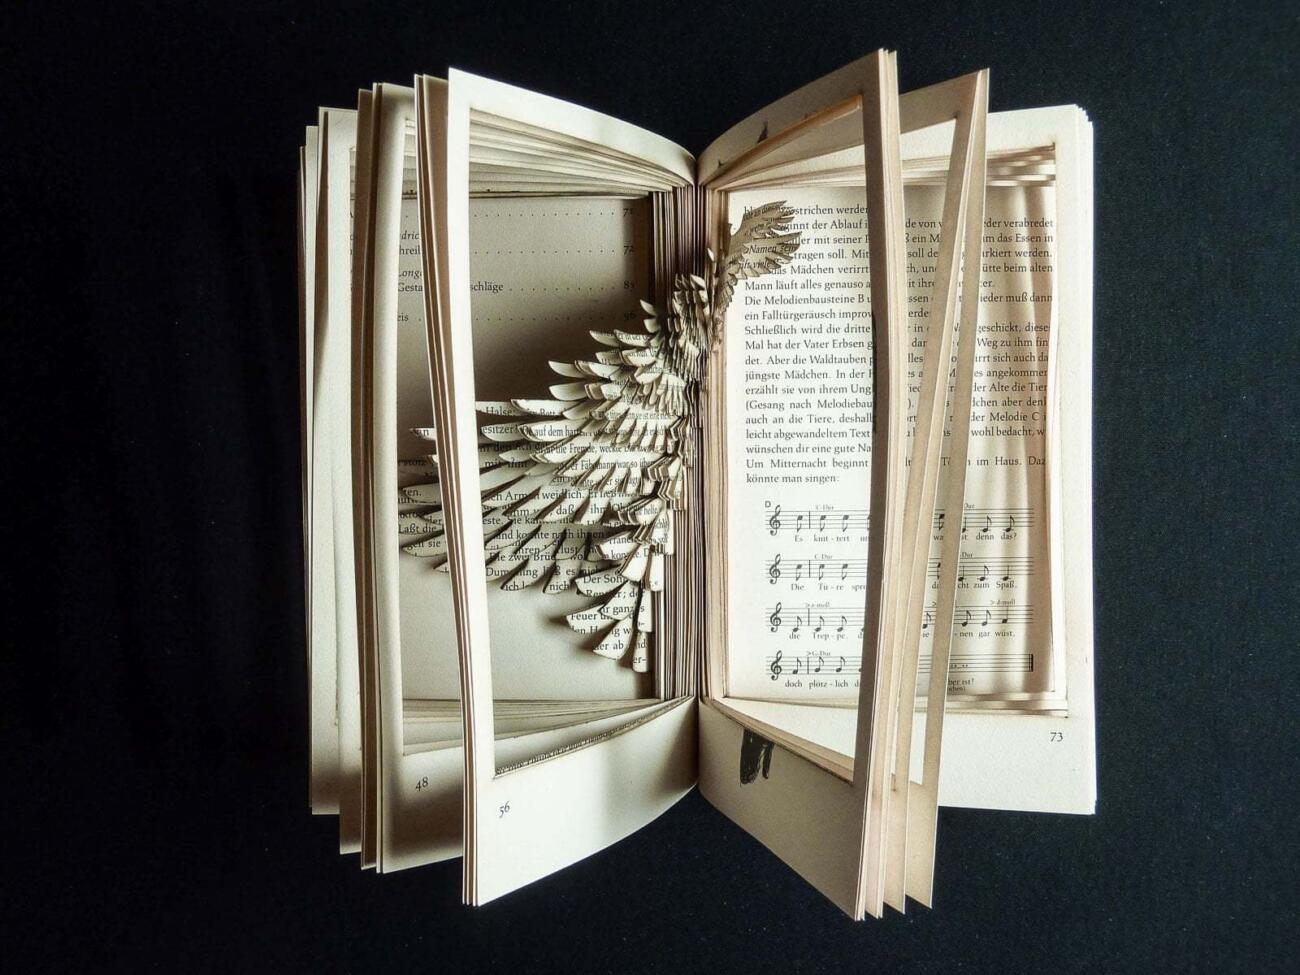 Lasercut in Book - Bird wing shape